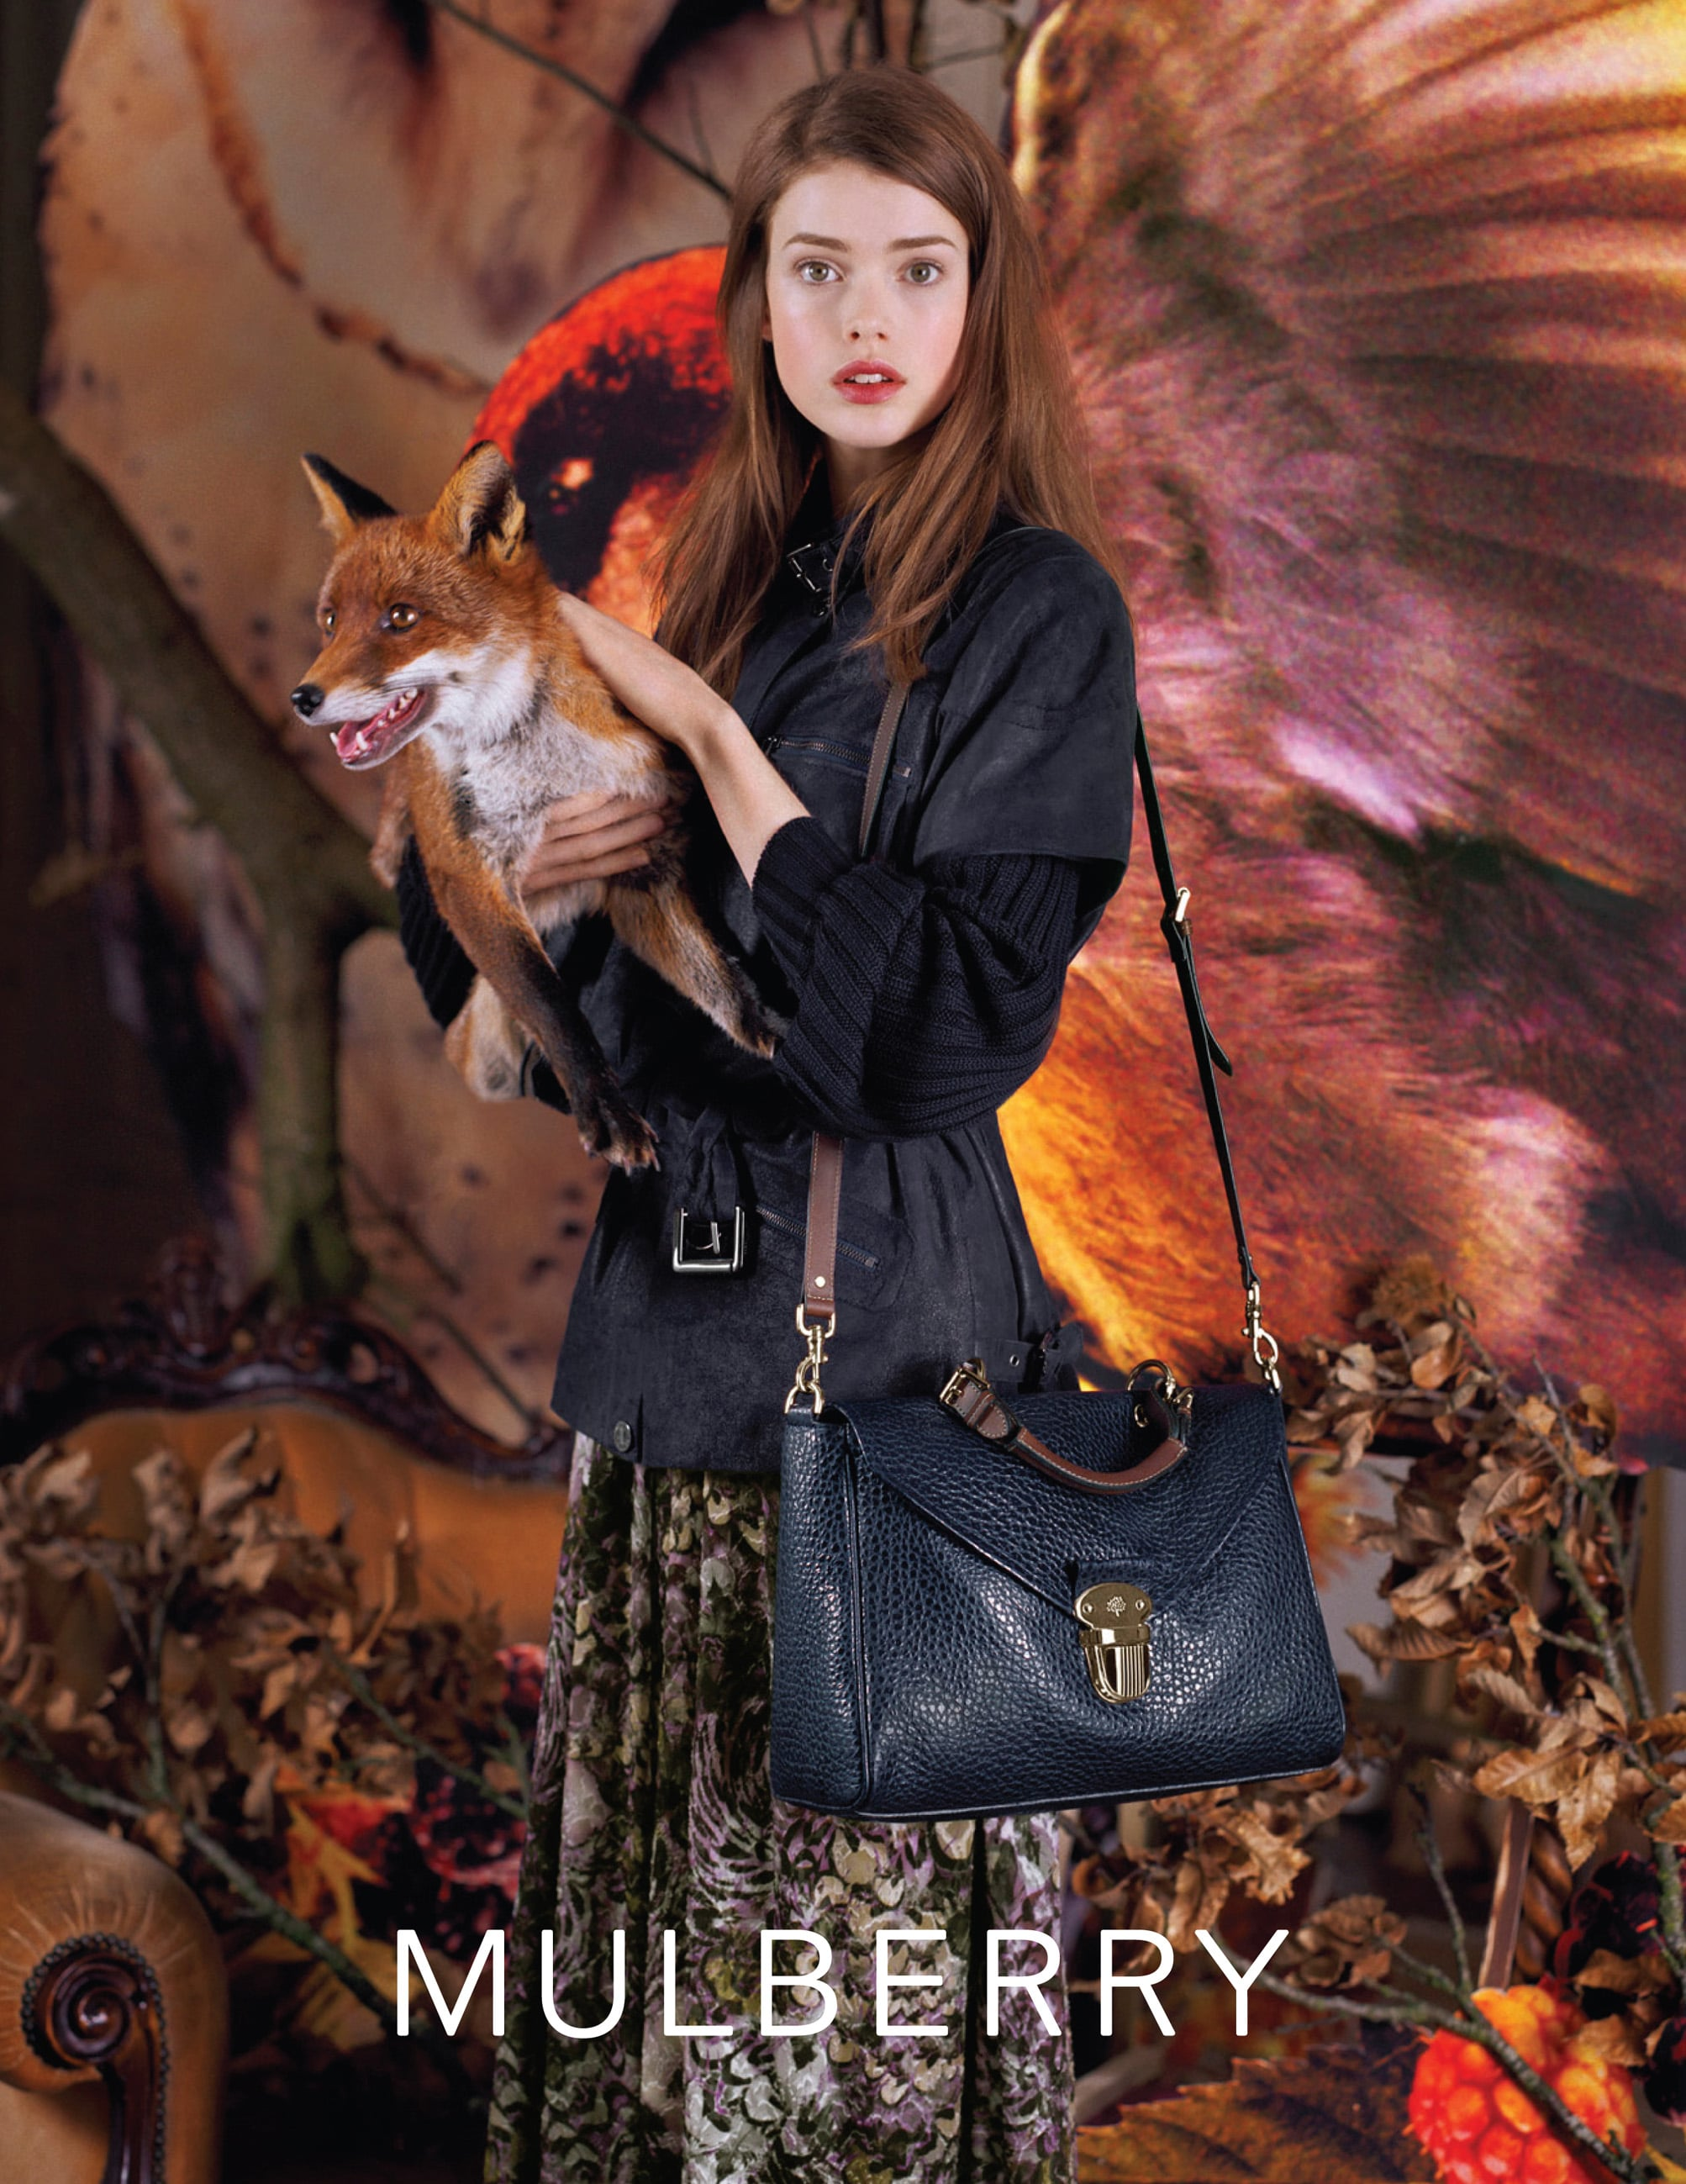 Campaign of D & G Autumn/Winter 2010 / 2011